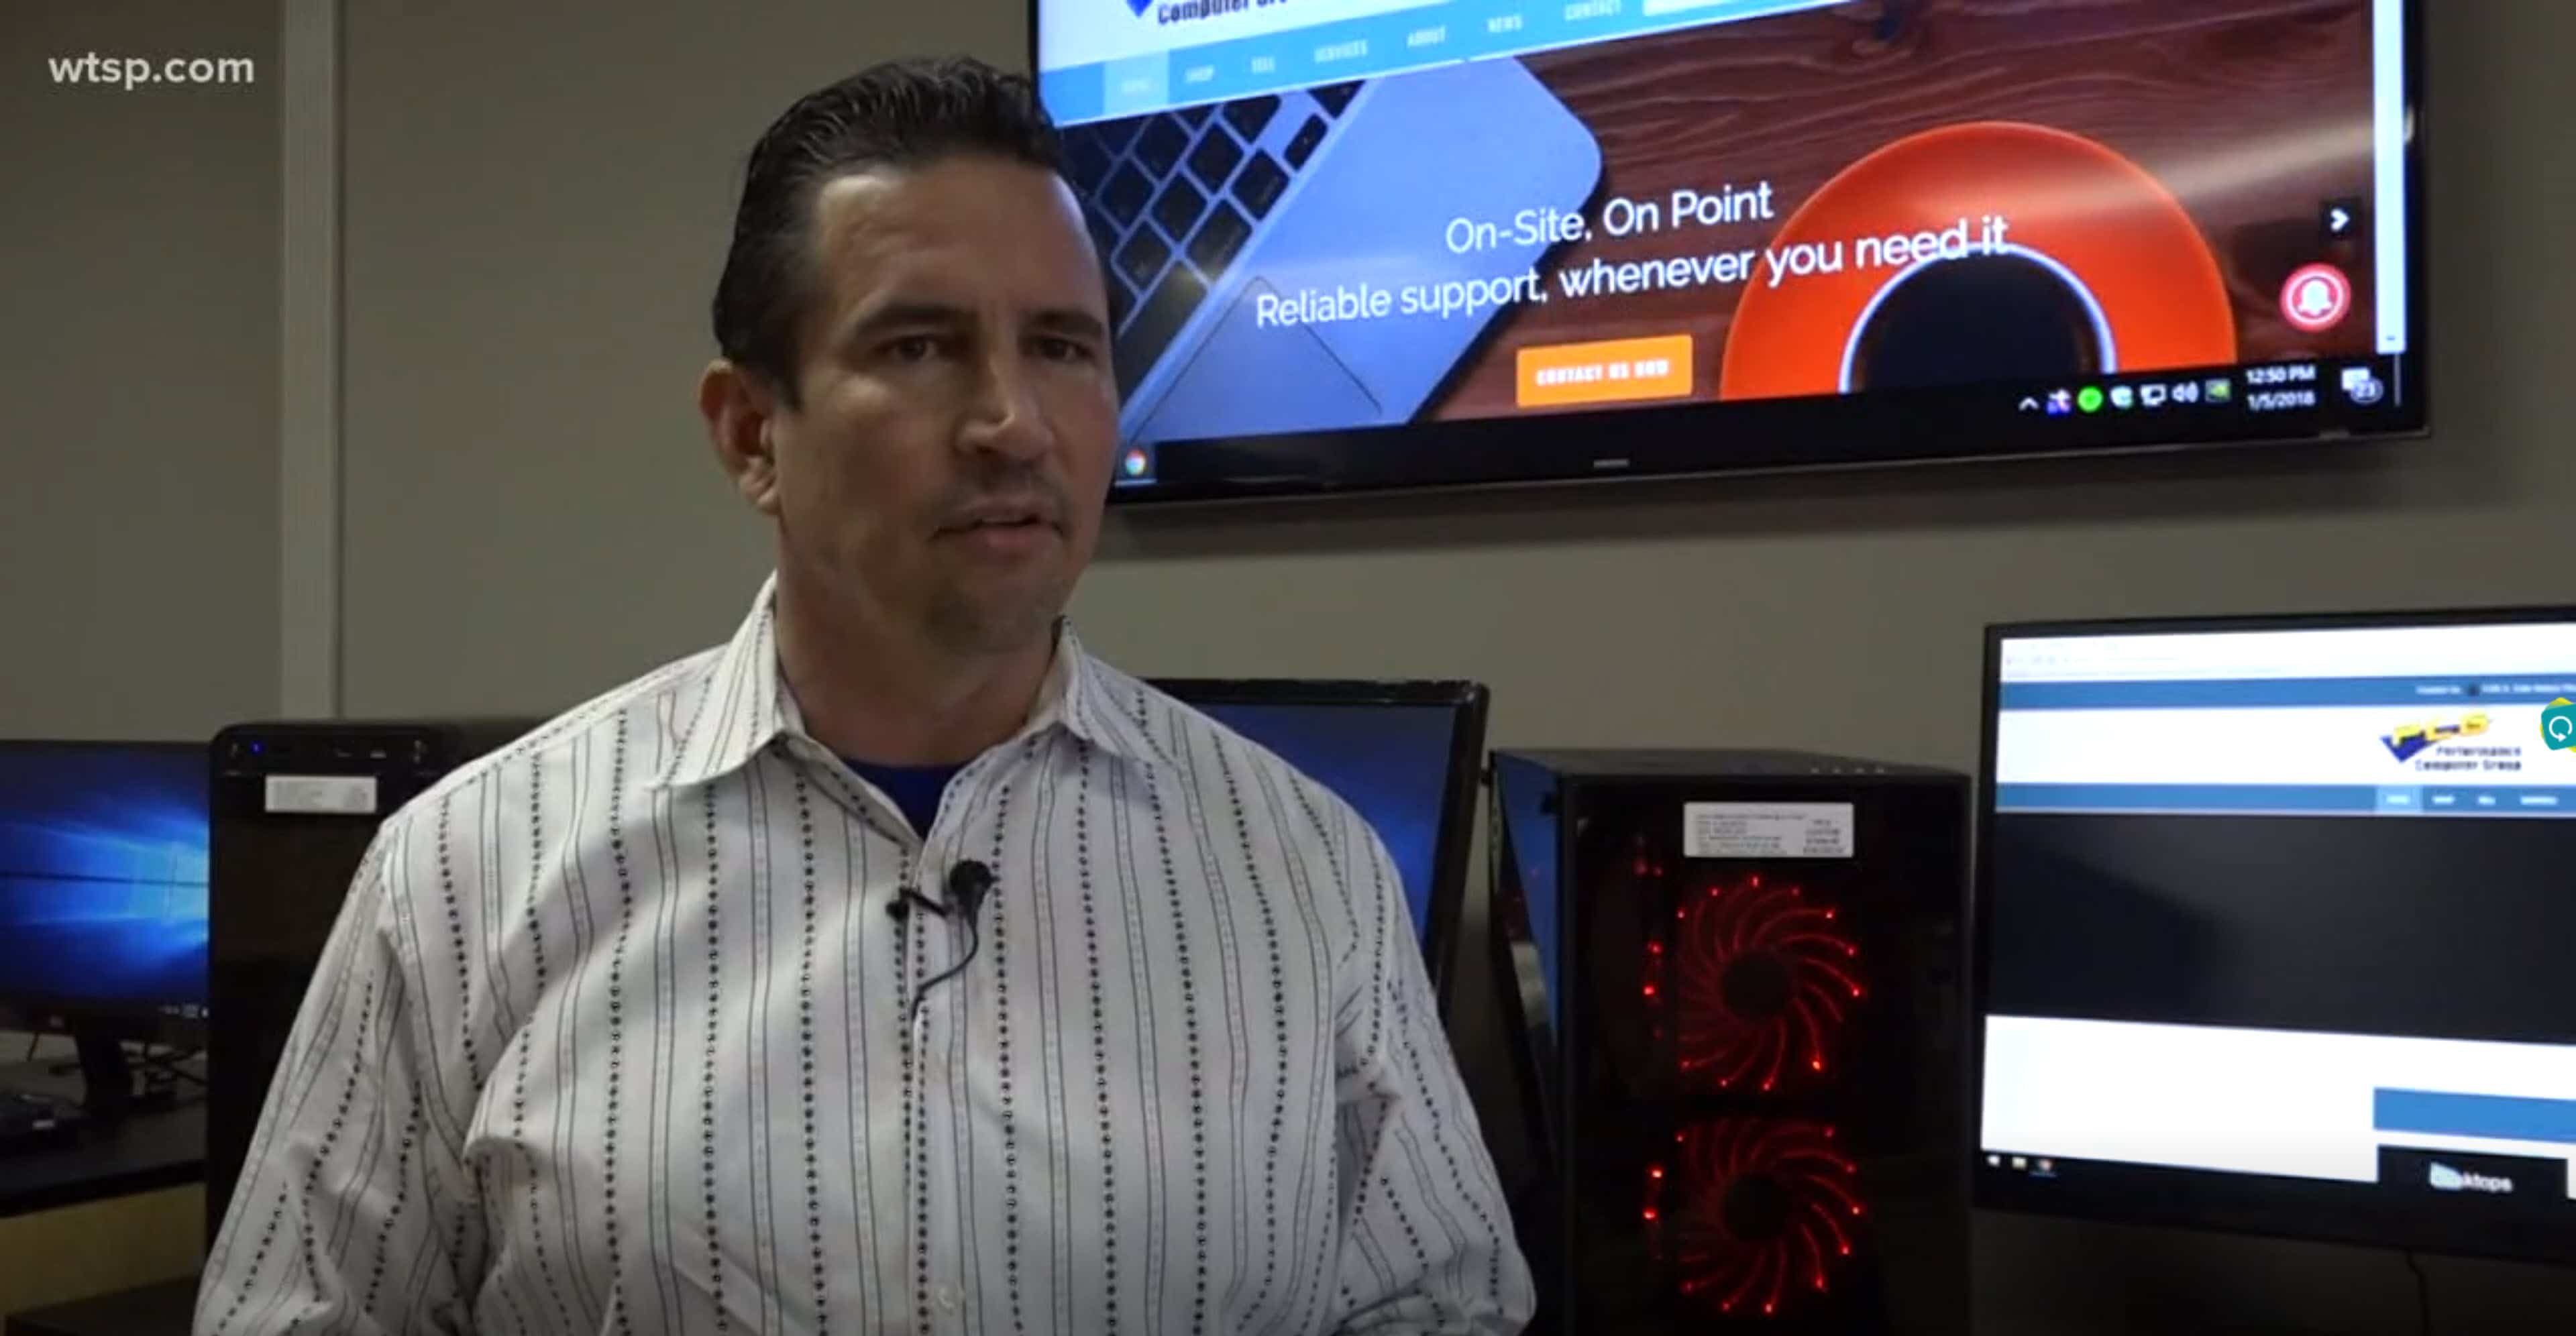 Computer security was never more important! This video at our South Tampa store explains.